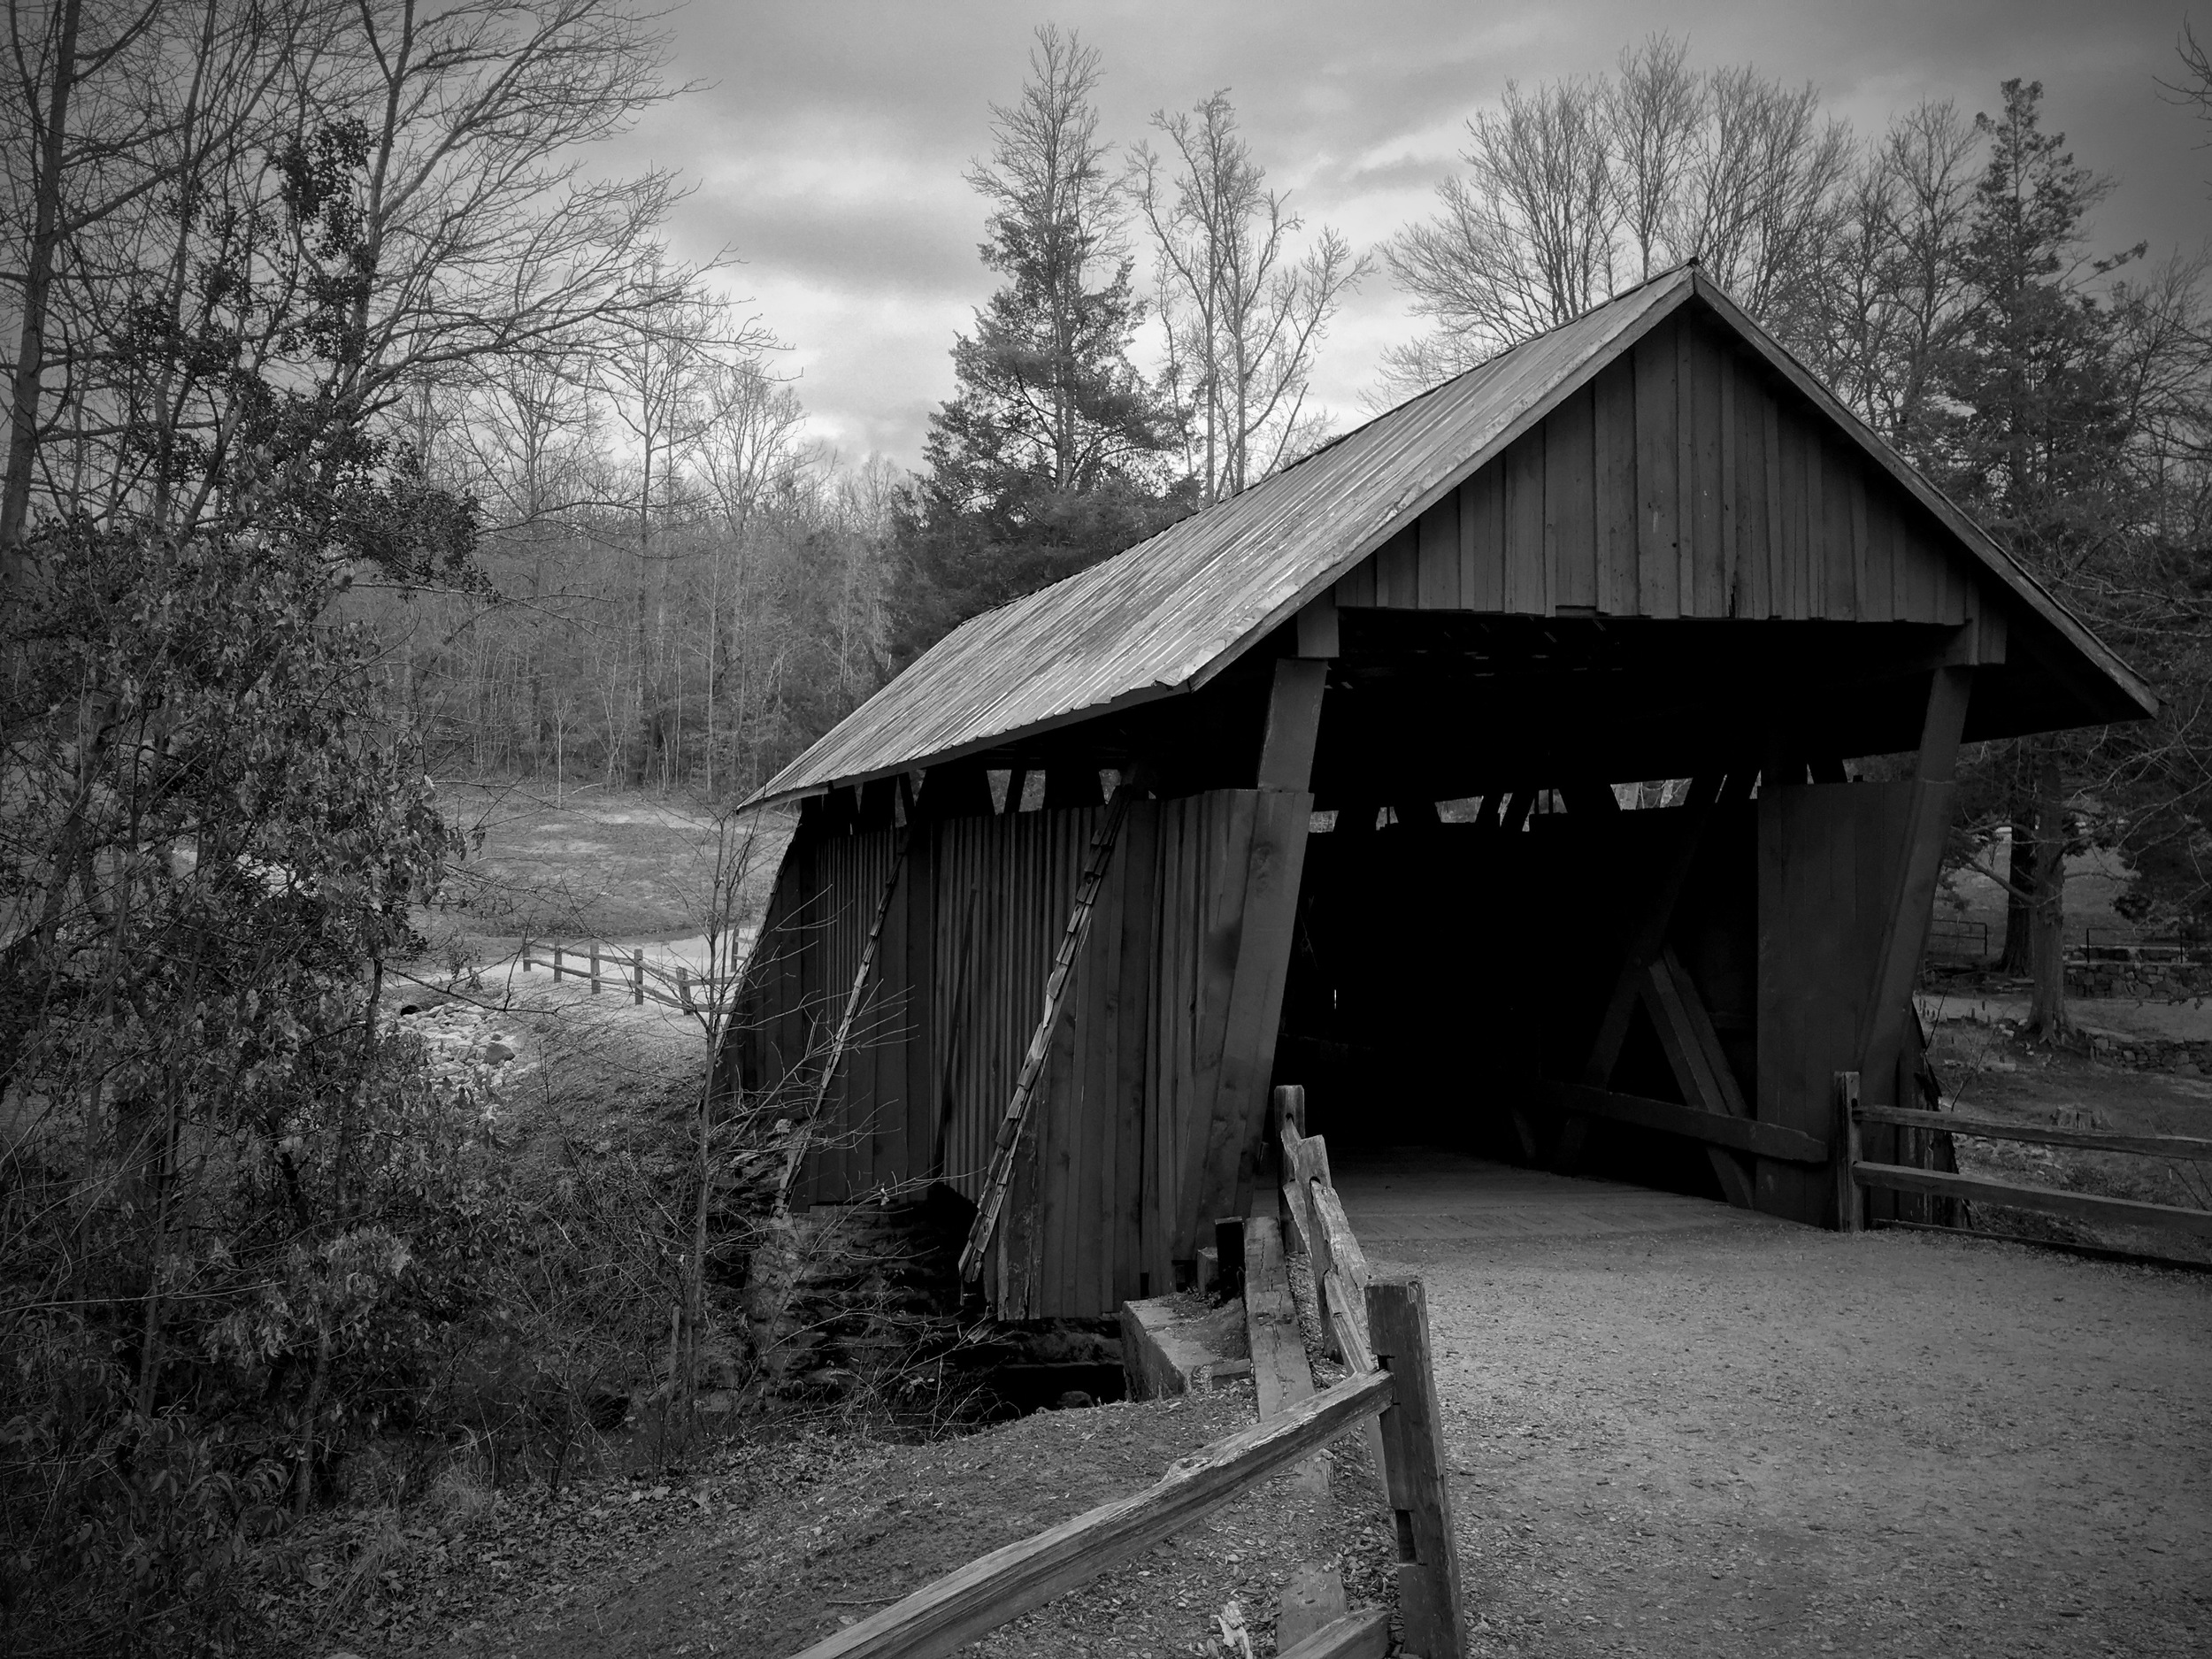 Campbell's Covered Bridge, South Carolina